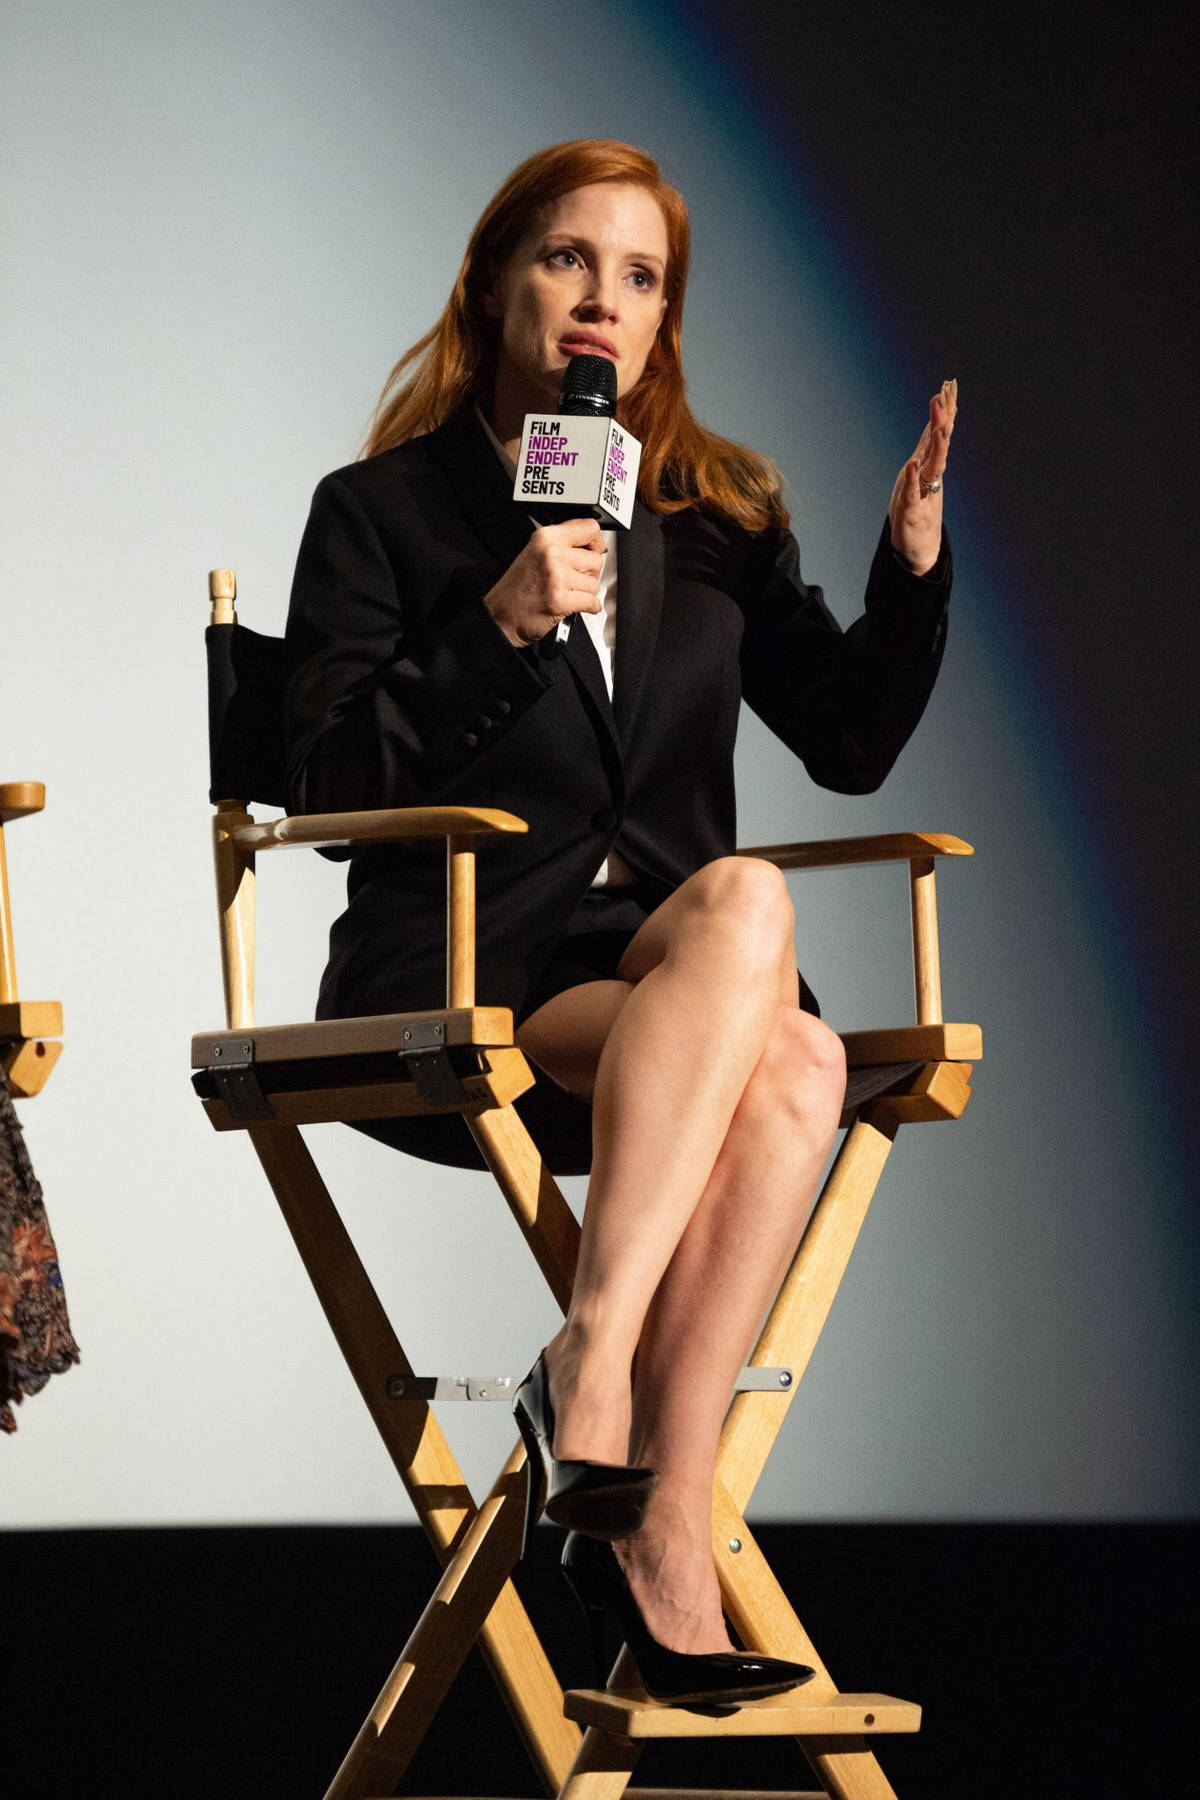 Jessica Chastain speaks during the Film Independent screening of 'Scenes From A Marriage' in Los Angeles